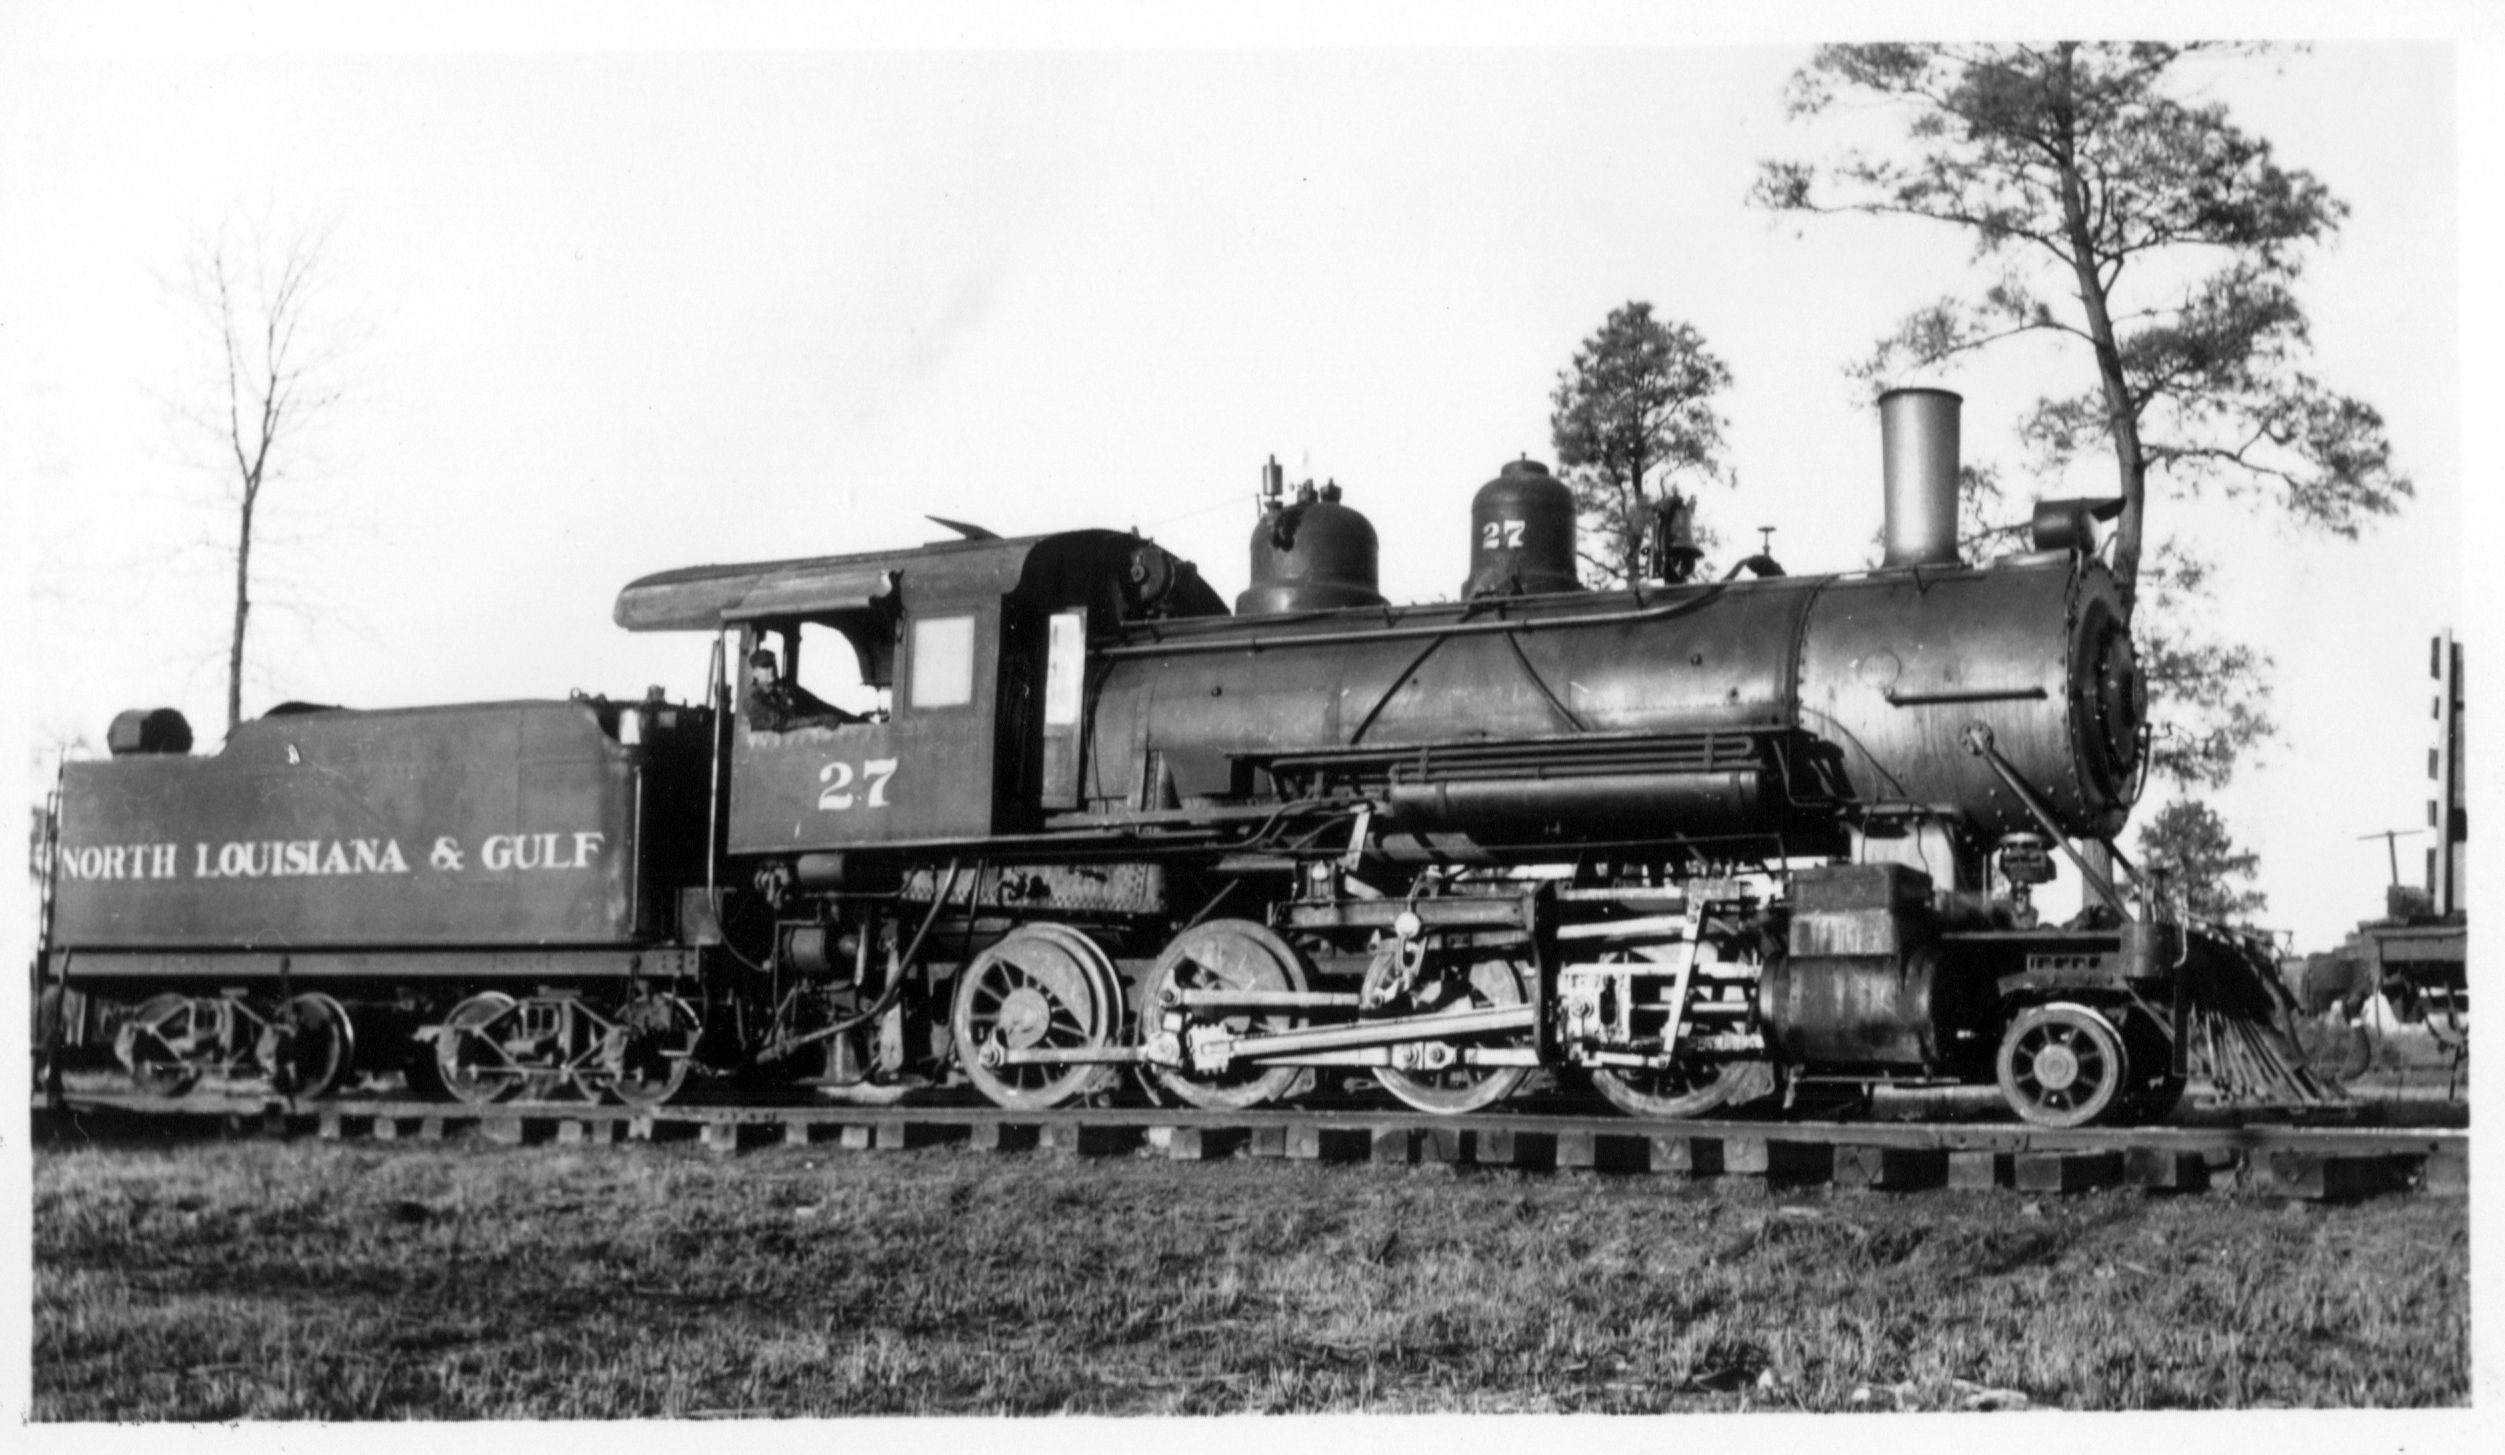 Locomotive #27 (1938)